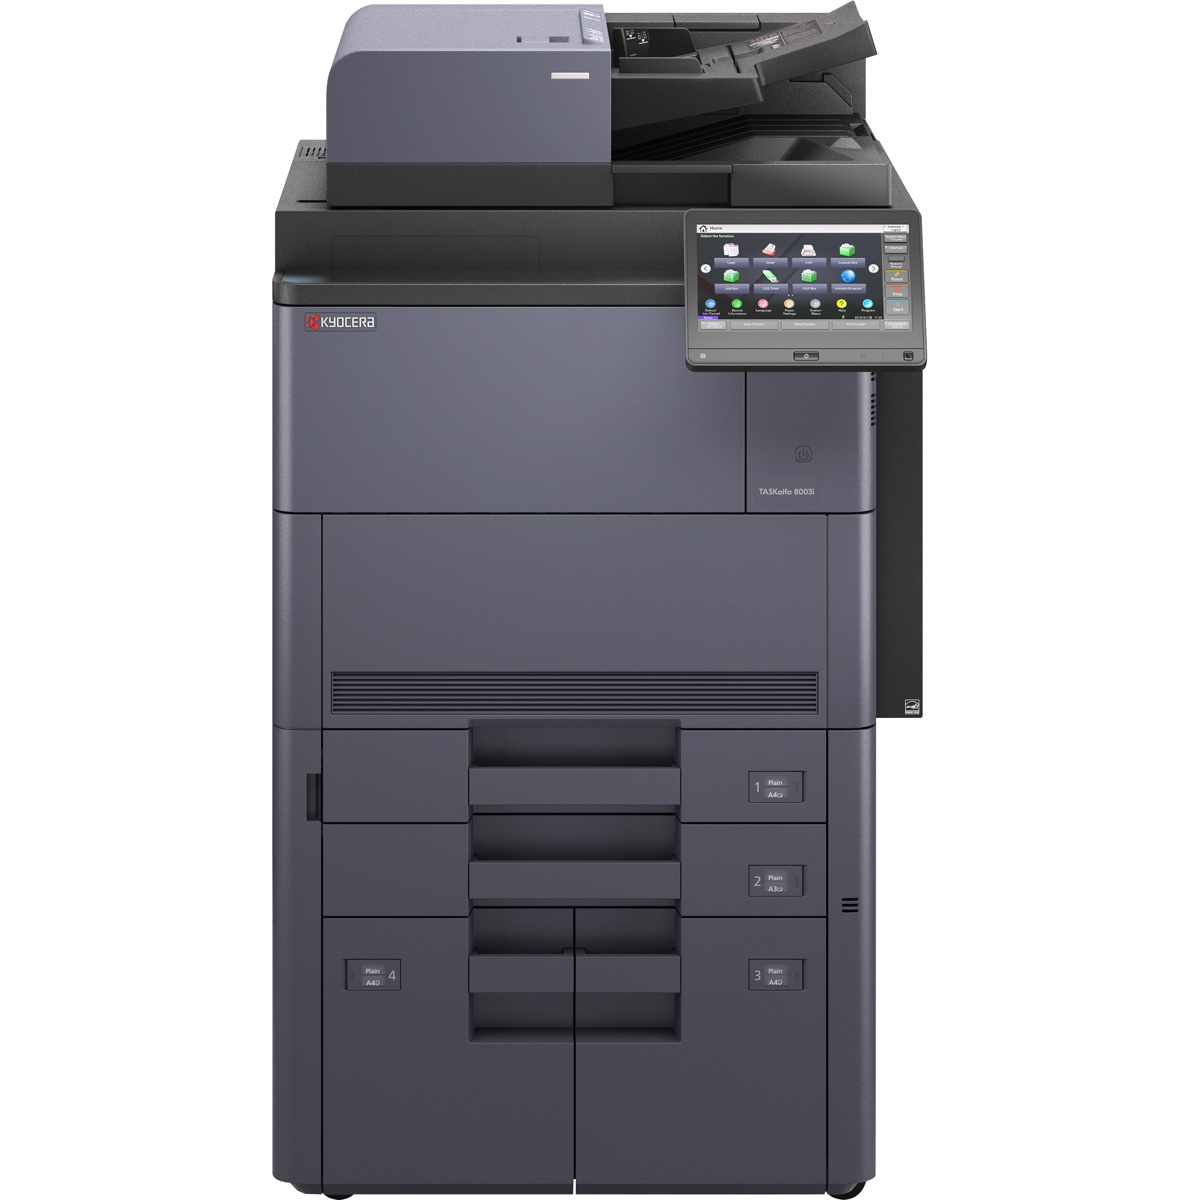 Kyocera Copiers:  The Kyocera TASKalfa 8003i Copier